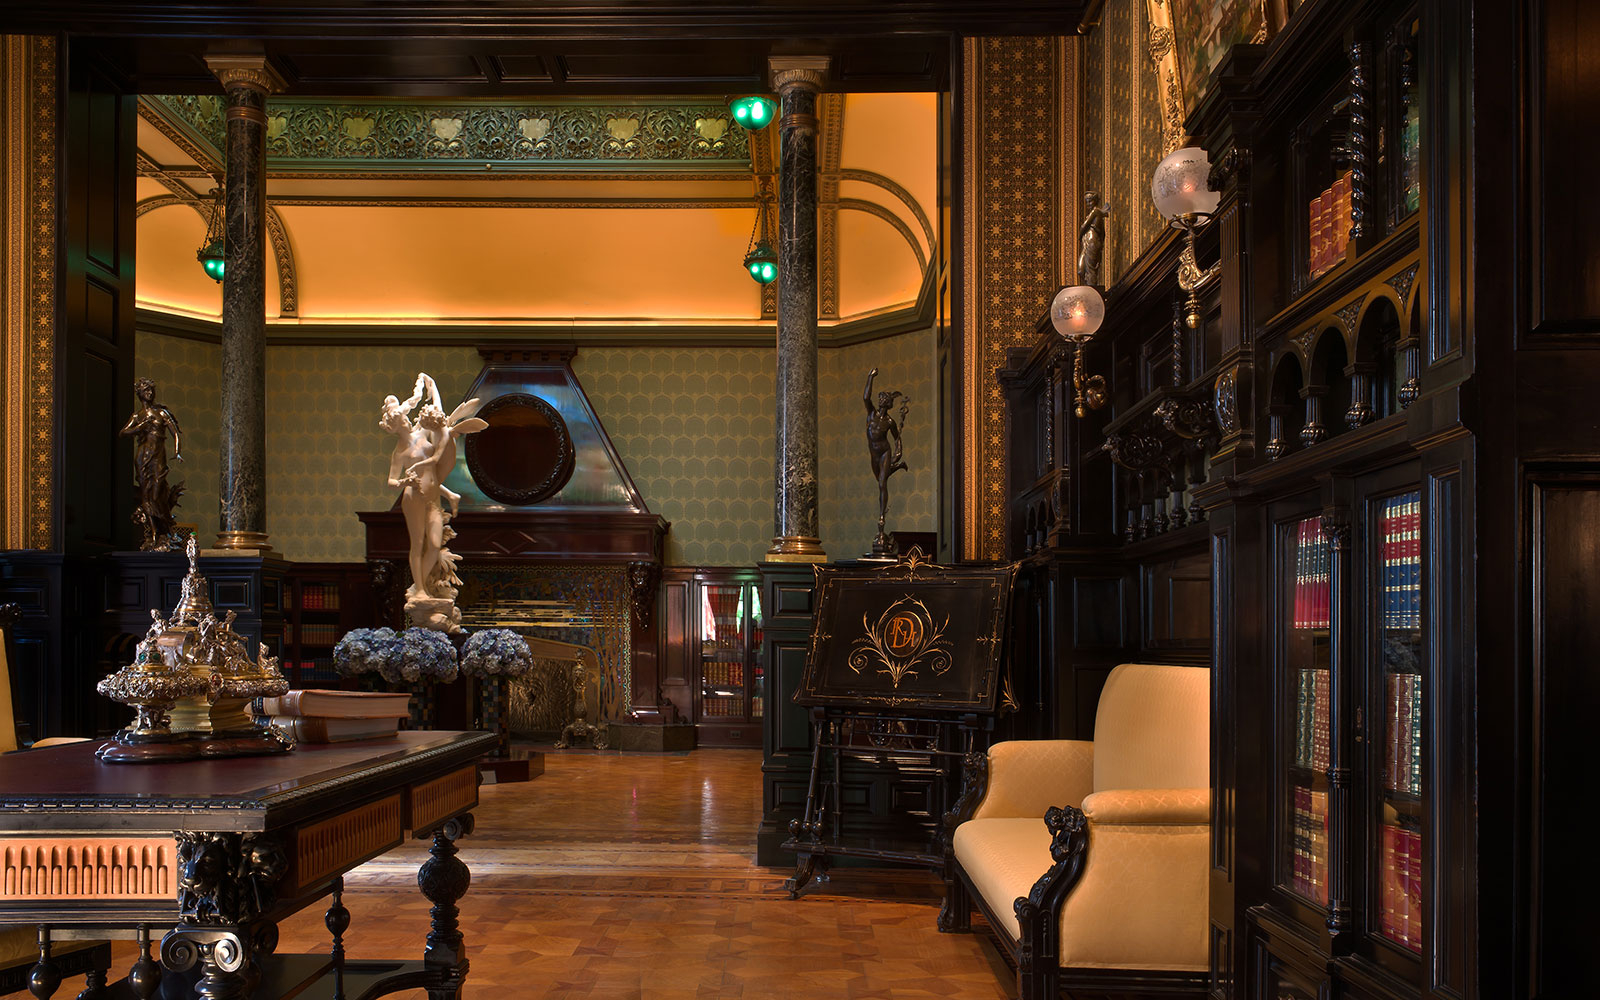 Richard Driehaus Museum